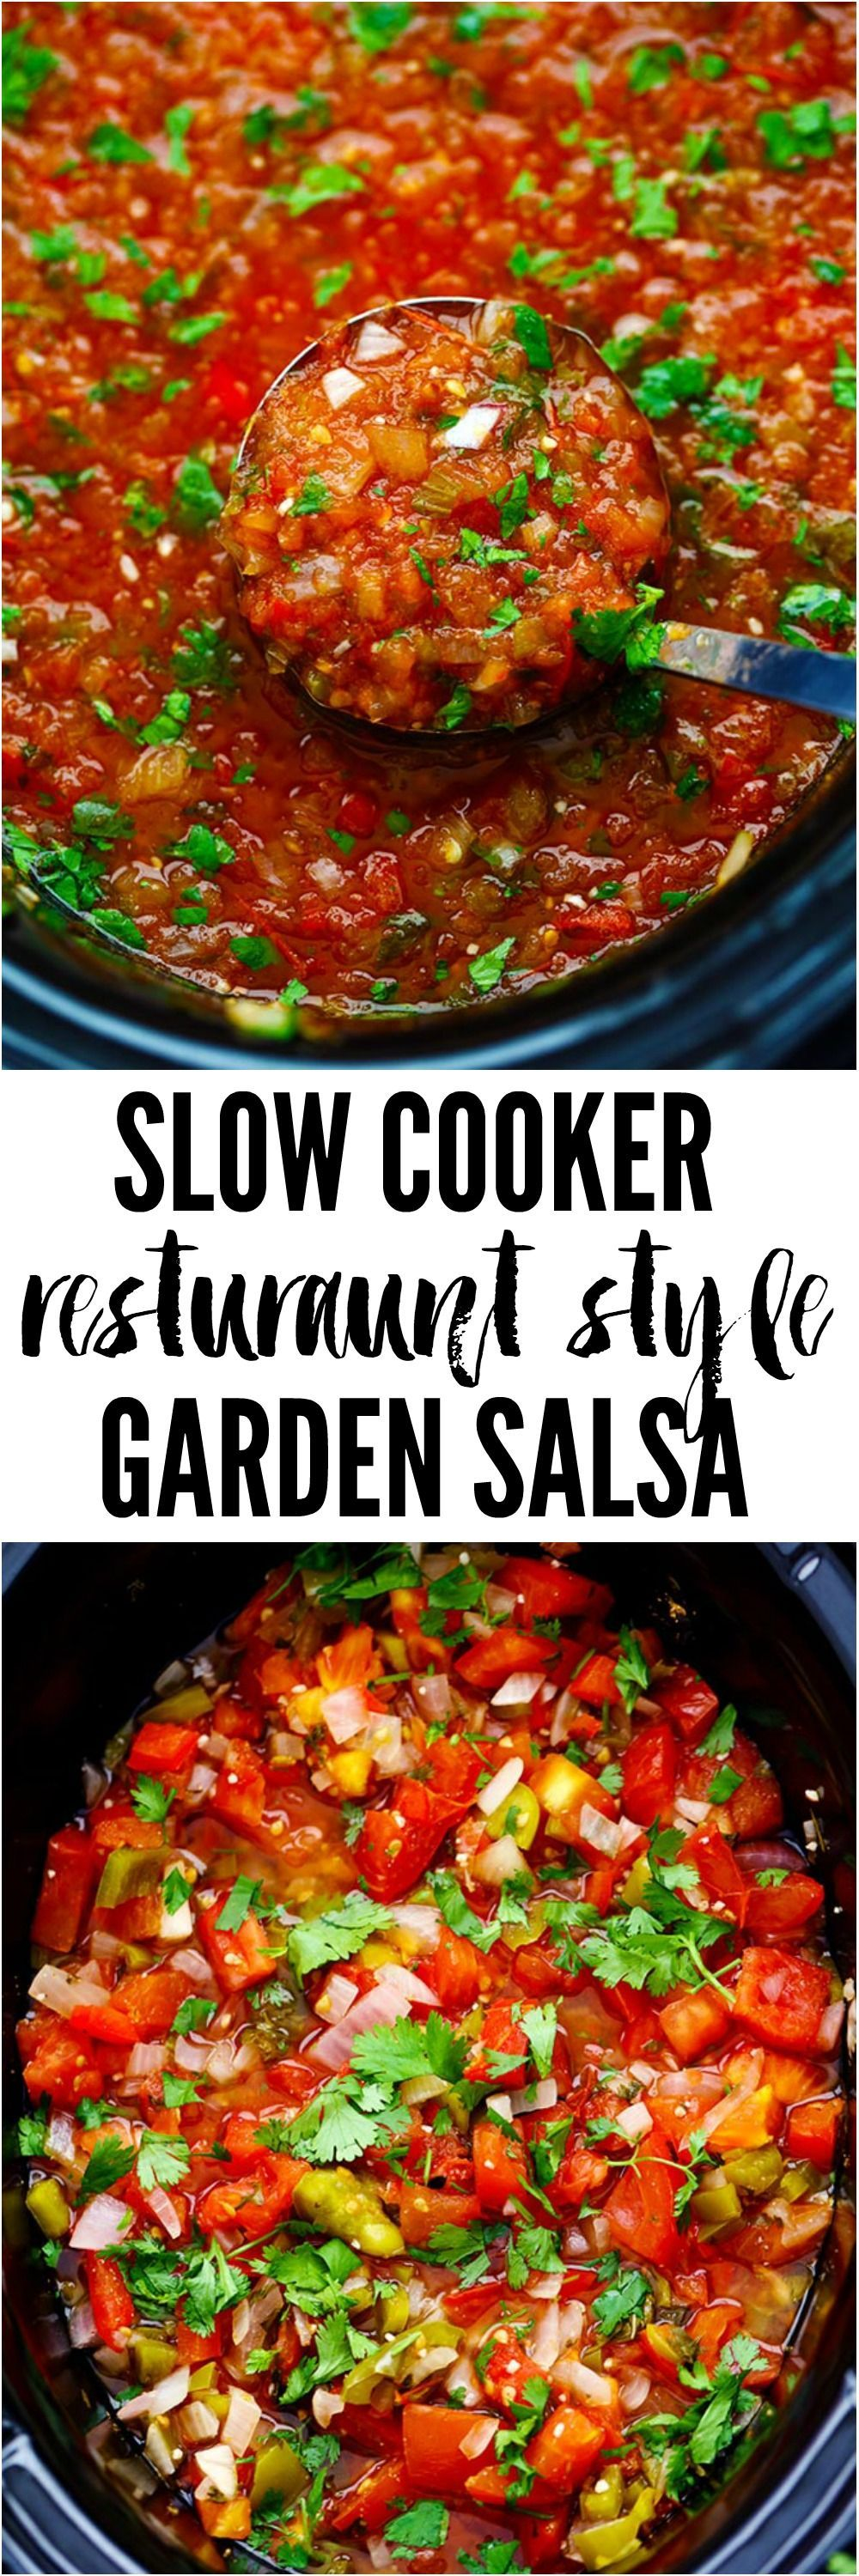 Slow Cooker Restaurant Style Garden Salsa Slow Cooker Restaurant Style Garden Salsa has so many delicious and fresh ingredients and uses up all of those garden tomatoes. It is so… Cooker Restaurant Style Garden Salsa Slow Cooker Restaurant Style Garden Salsa has so many delicious and fresh ingredients and uses up all of those garden tomatoes. It is so…Slow Cooker Restaurant Style Garden Salsa has so many delicious and fresh ingredients and uses up all of those garden tomatoes. It is so…